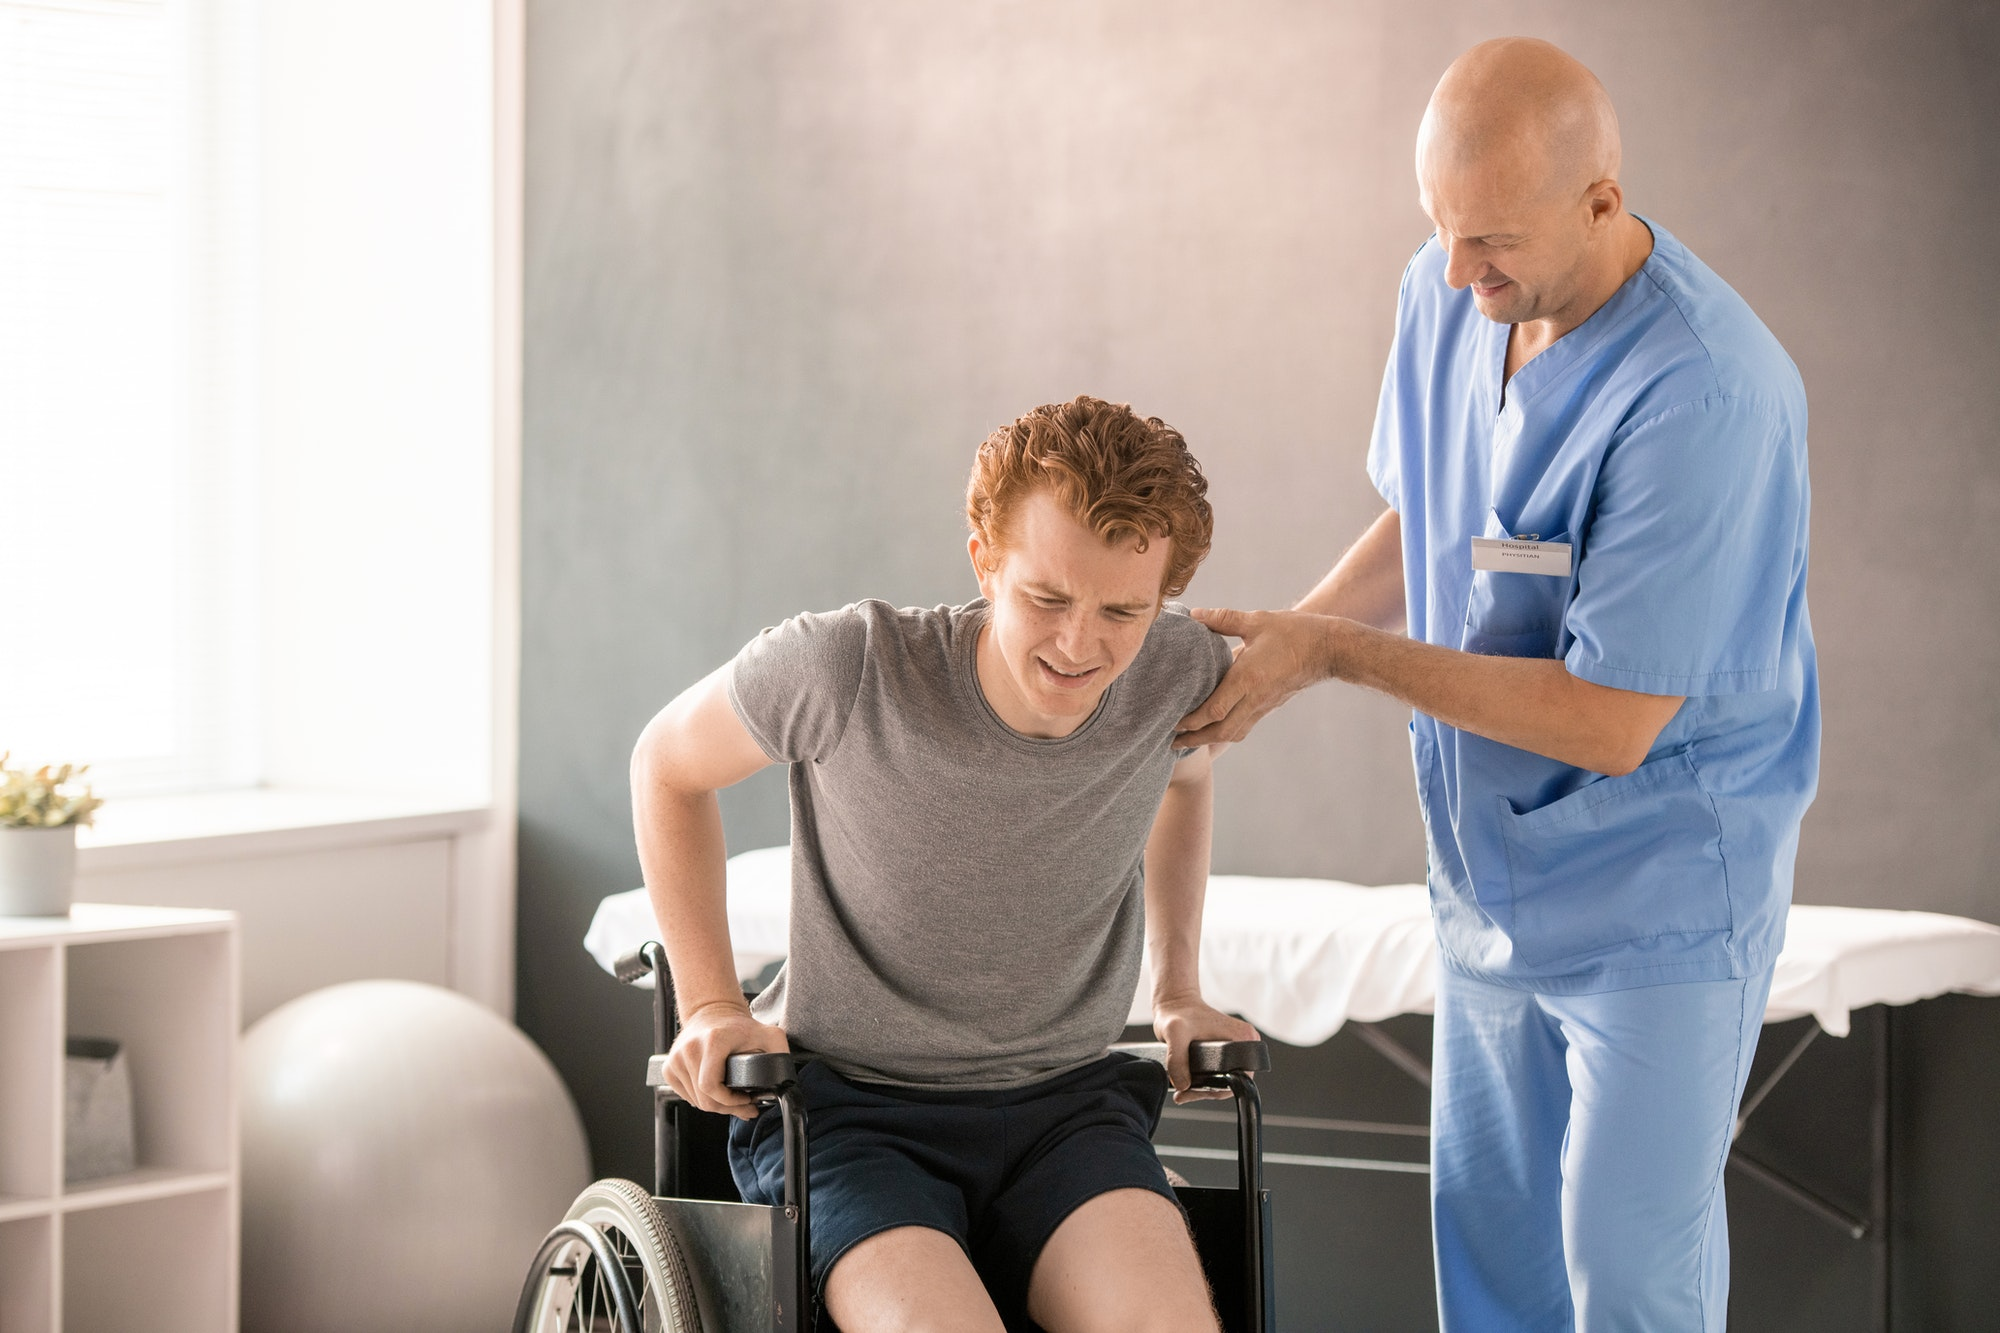 Mature clinician in uniform helping young man in pain to sit in wheelchair